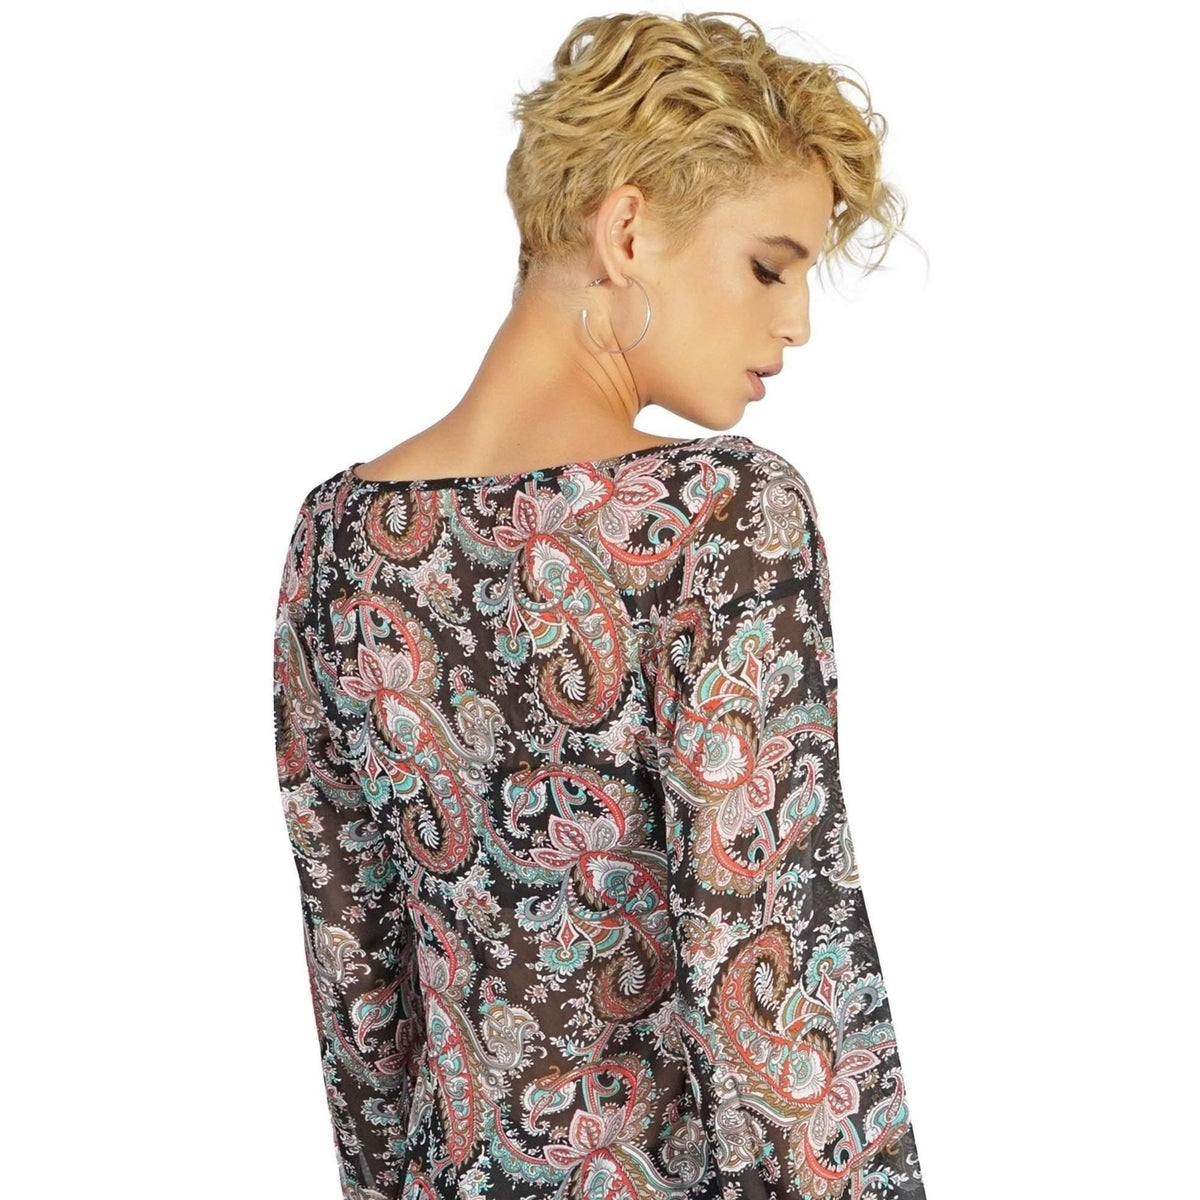 LIP SERVICE PAISLEY CHIFFON  TOP - Salemonster